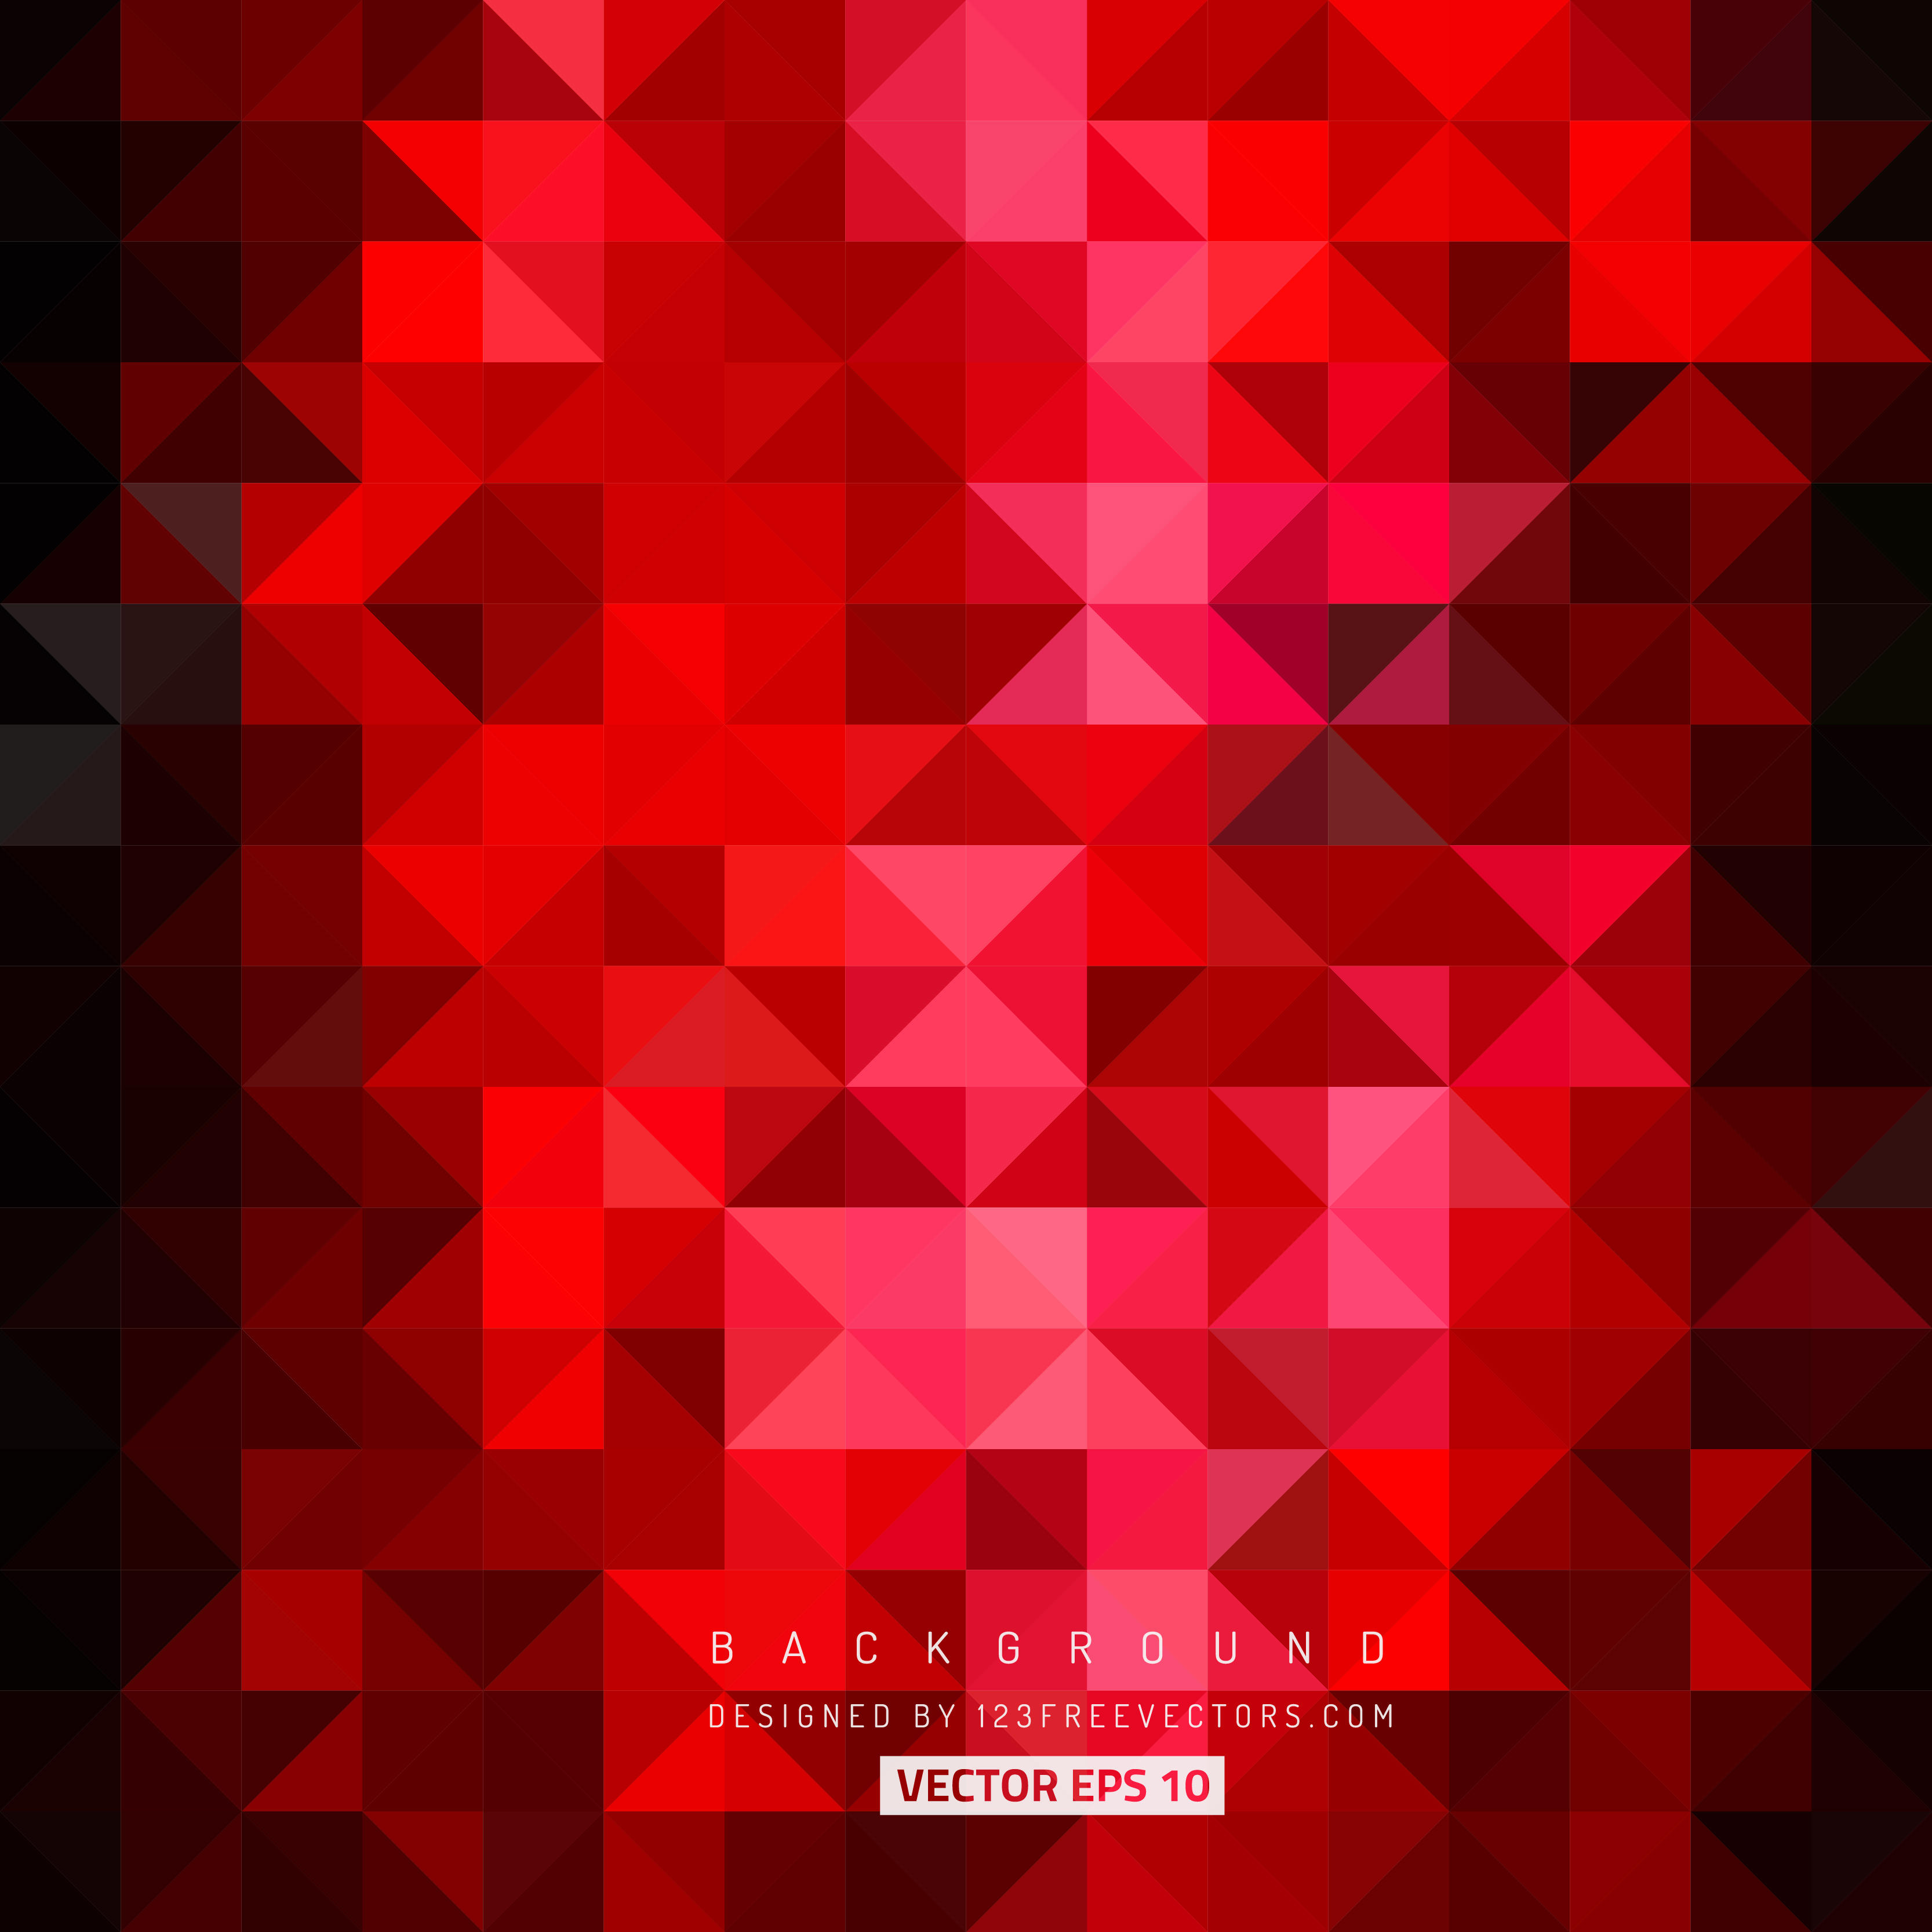 3333x3333 Red Black Triangle Background Vector 123freevectors